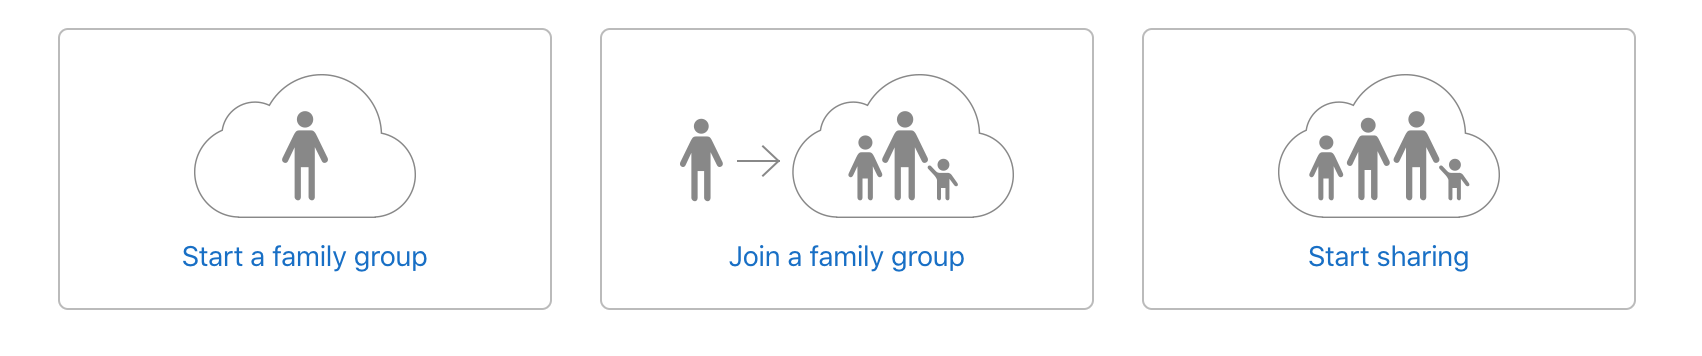 Apple enables family sharing